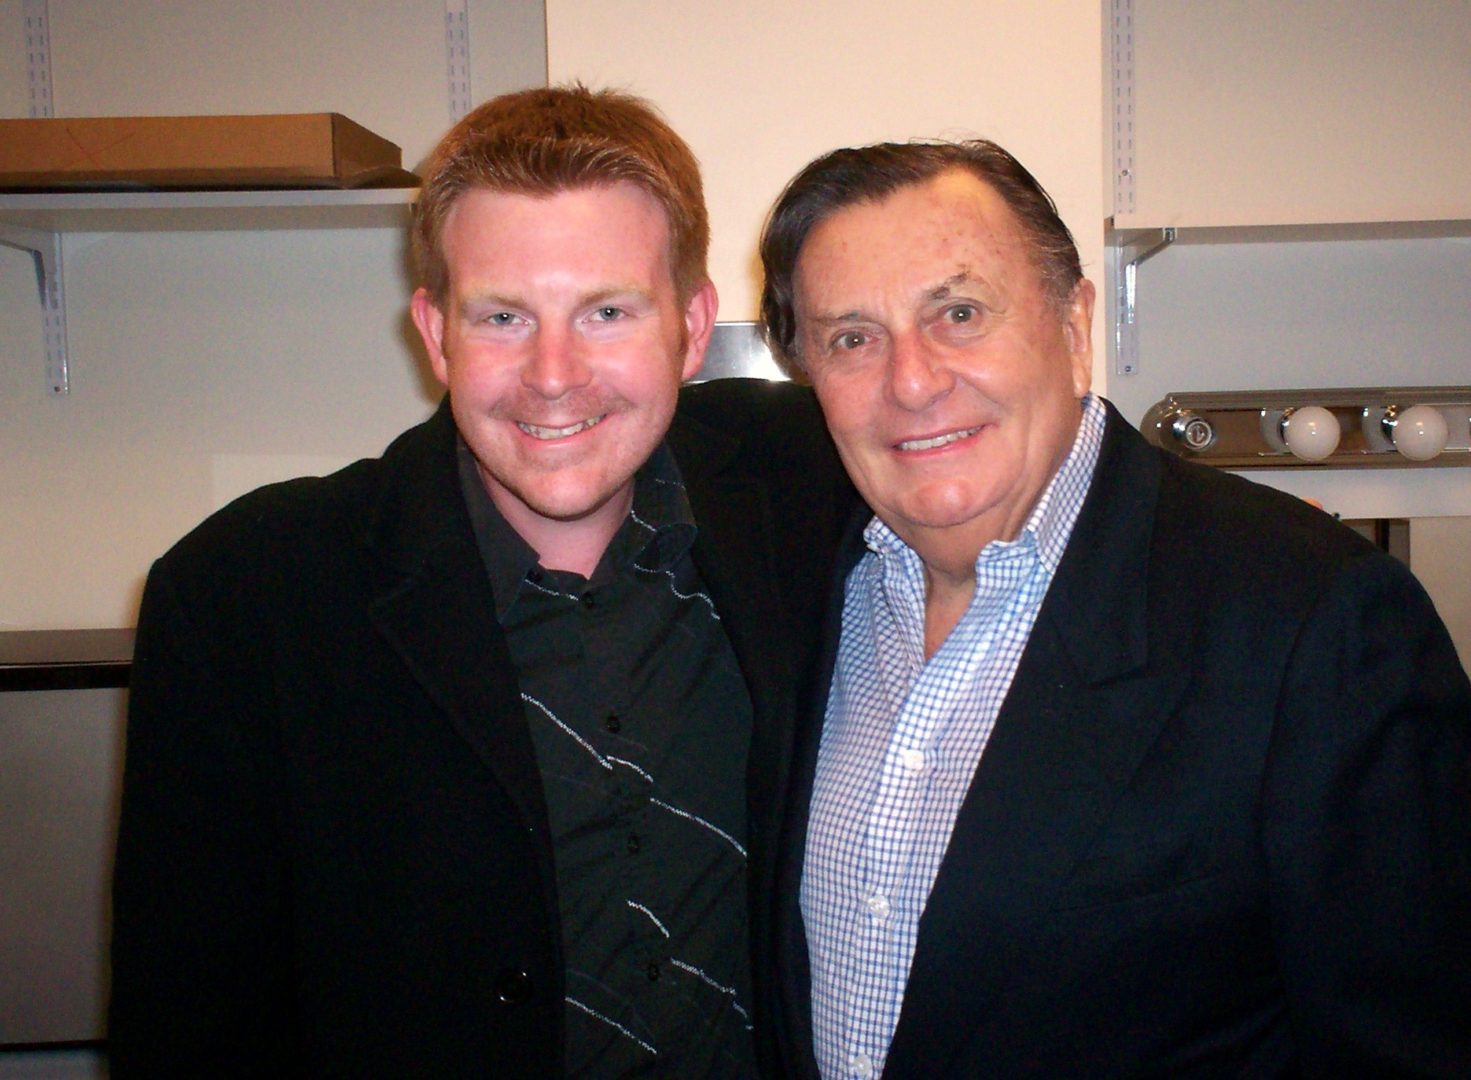 Barry Humphries Farewell Tour took place in 2014. There is no question that thousands are turning up each night at the London Palladium to see […]